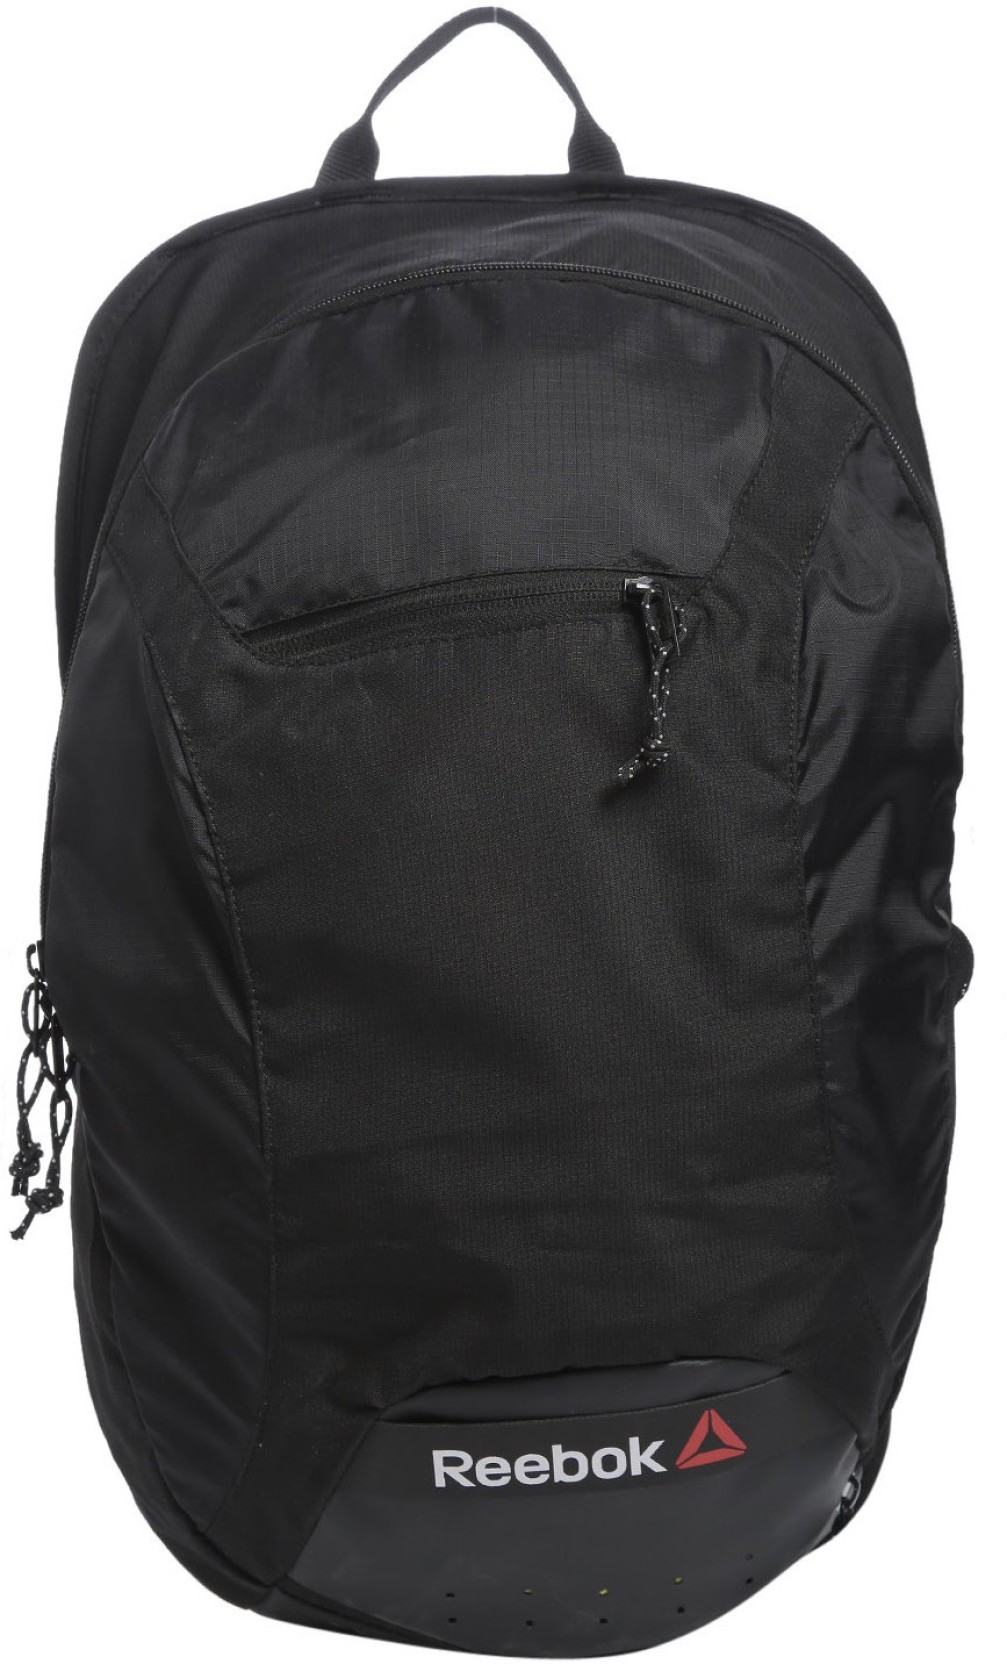 REEBOK OS 25 L Laptop Backpack Black - Price in India